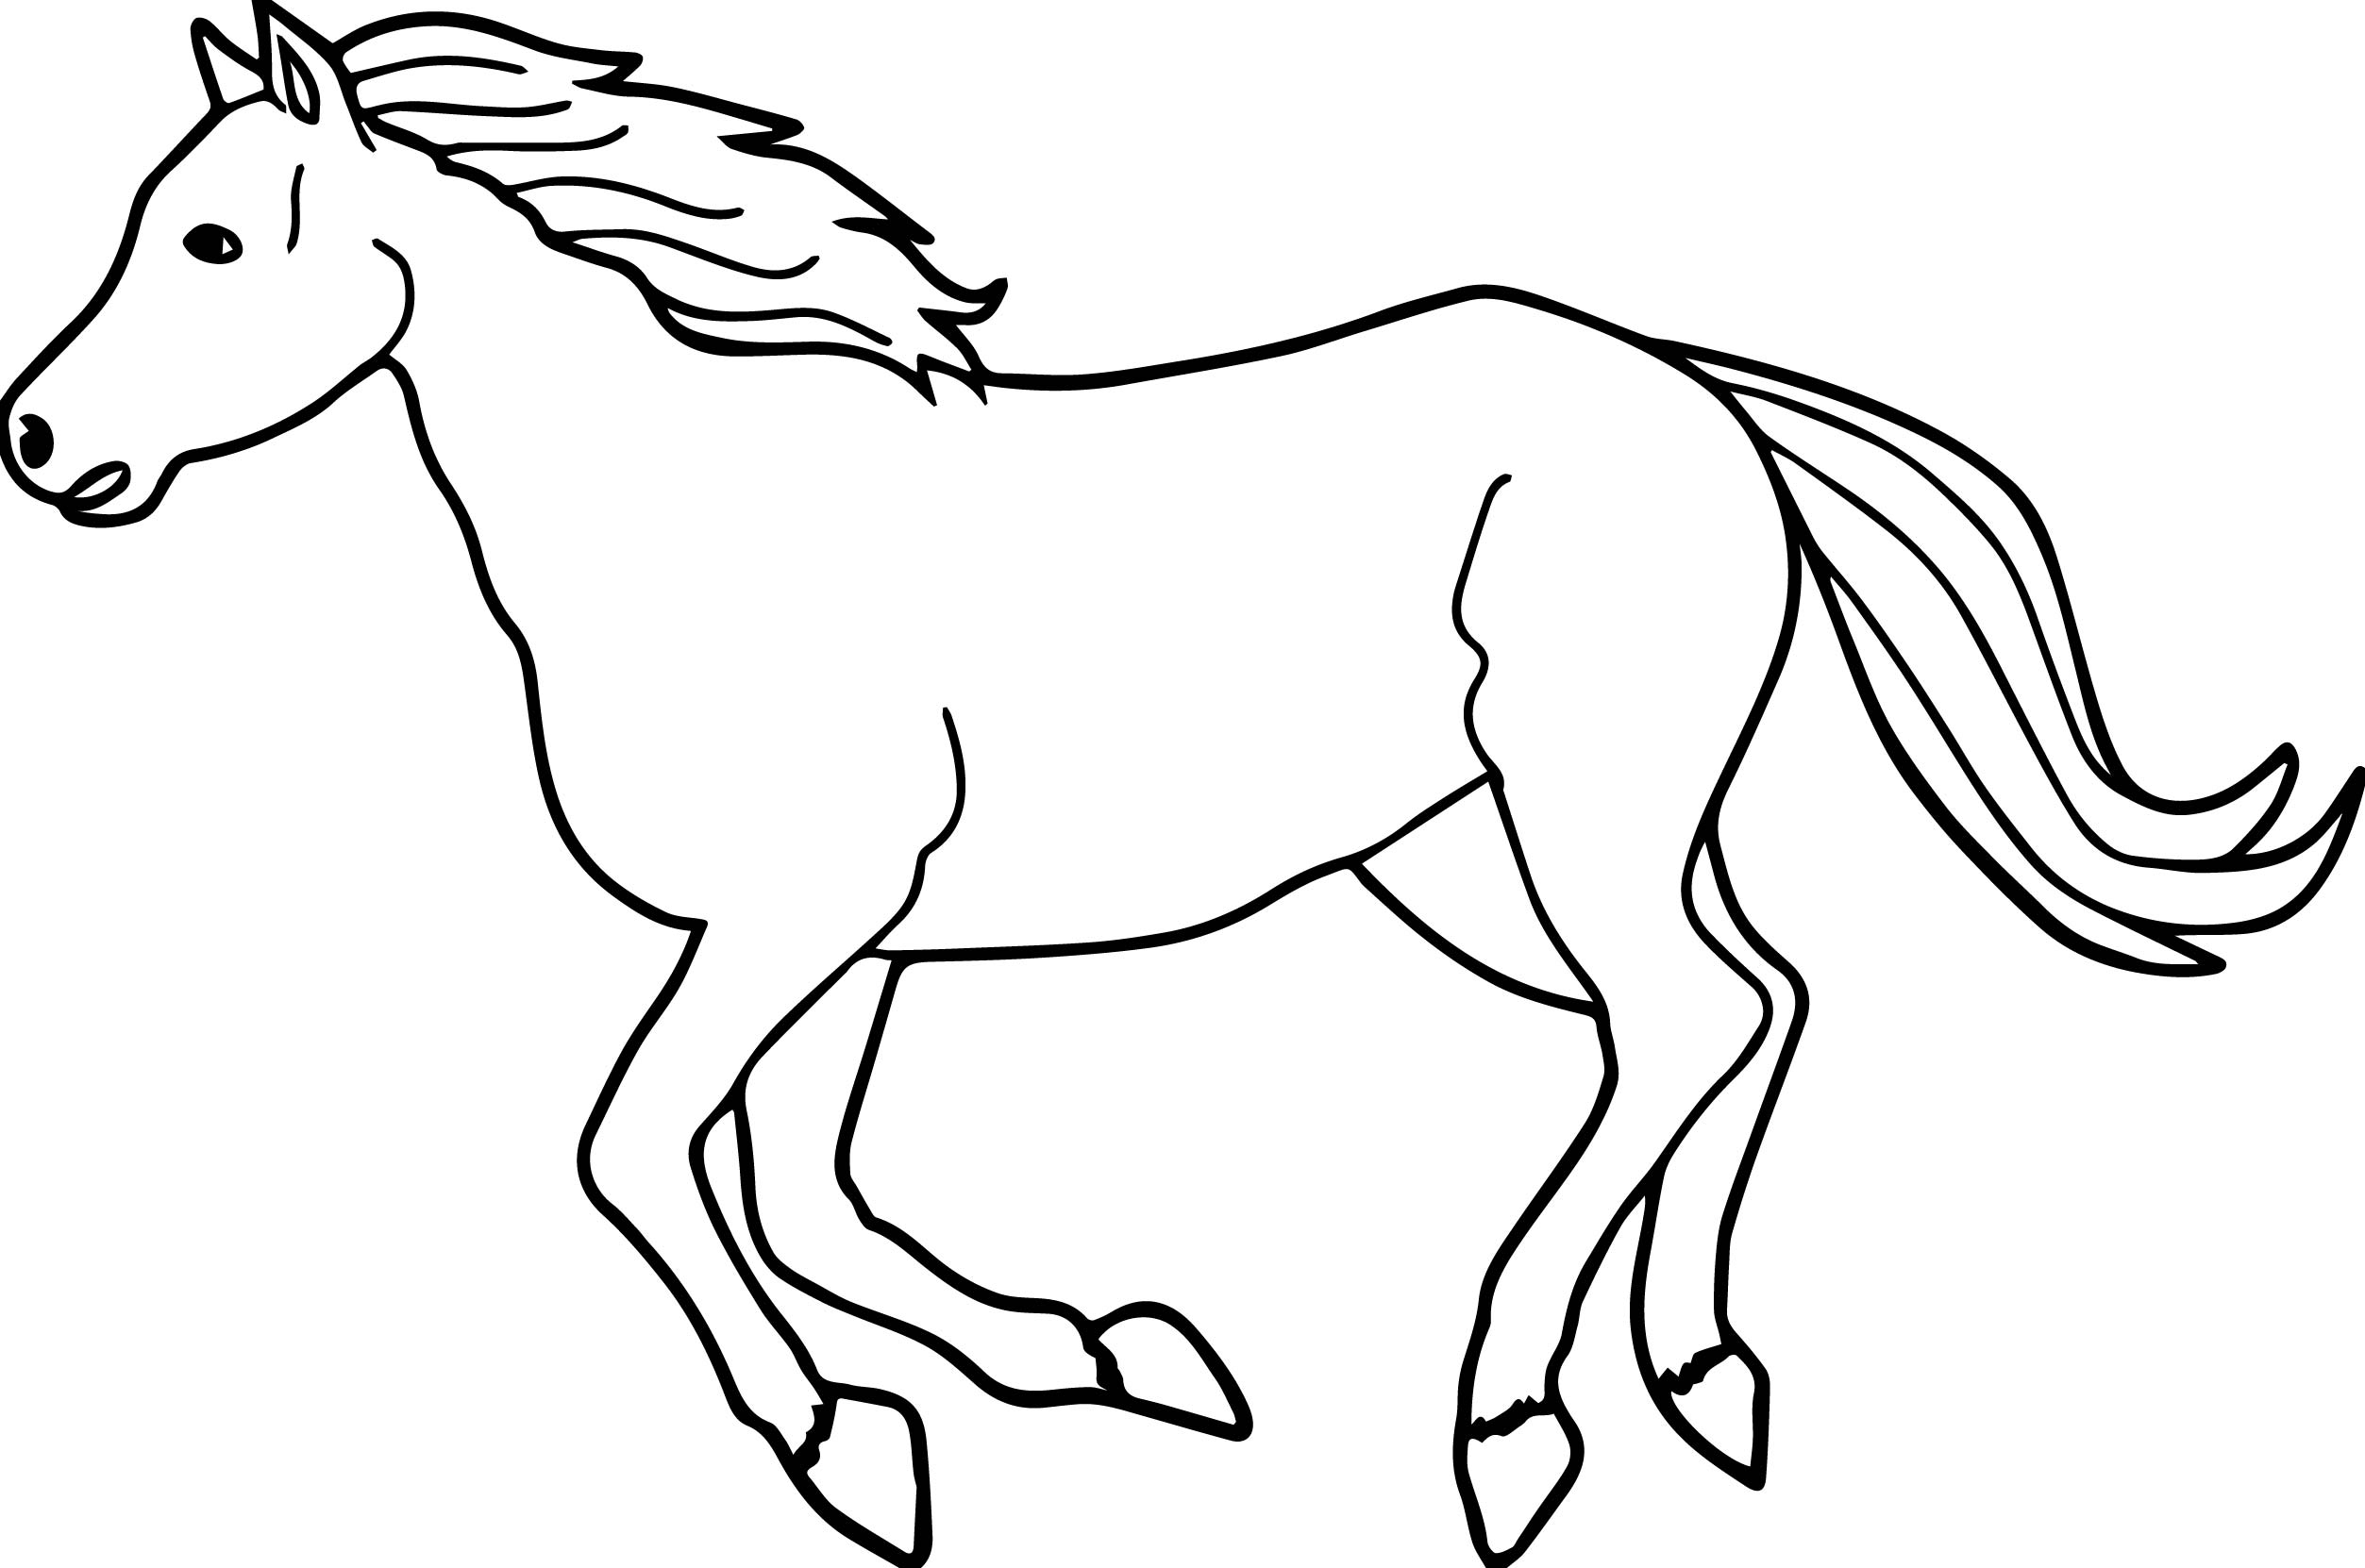 running horse coloring pages arabian horse drawing free download on clipartmag running coloring pages horse